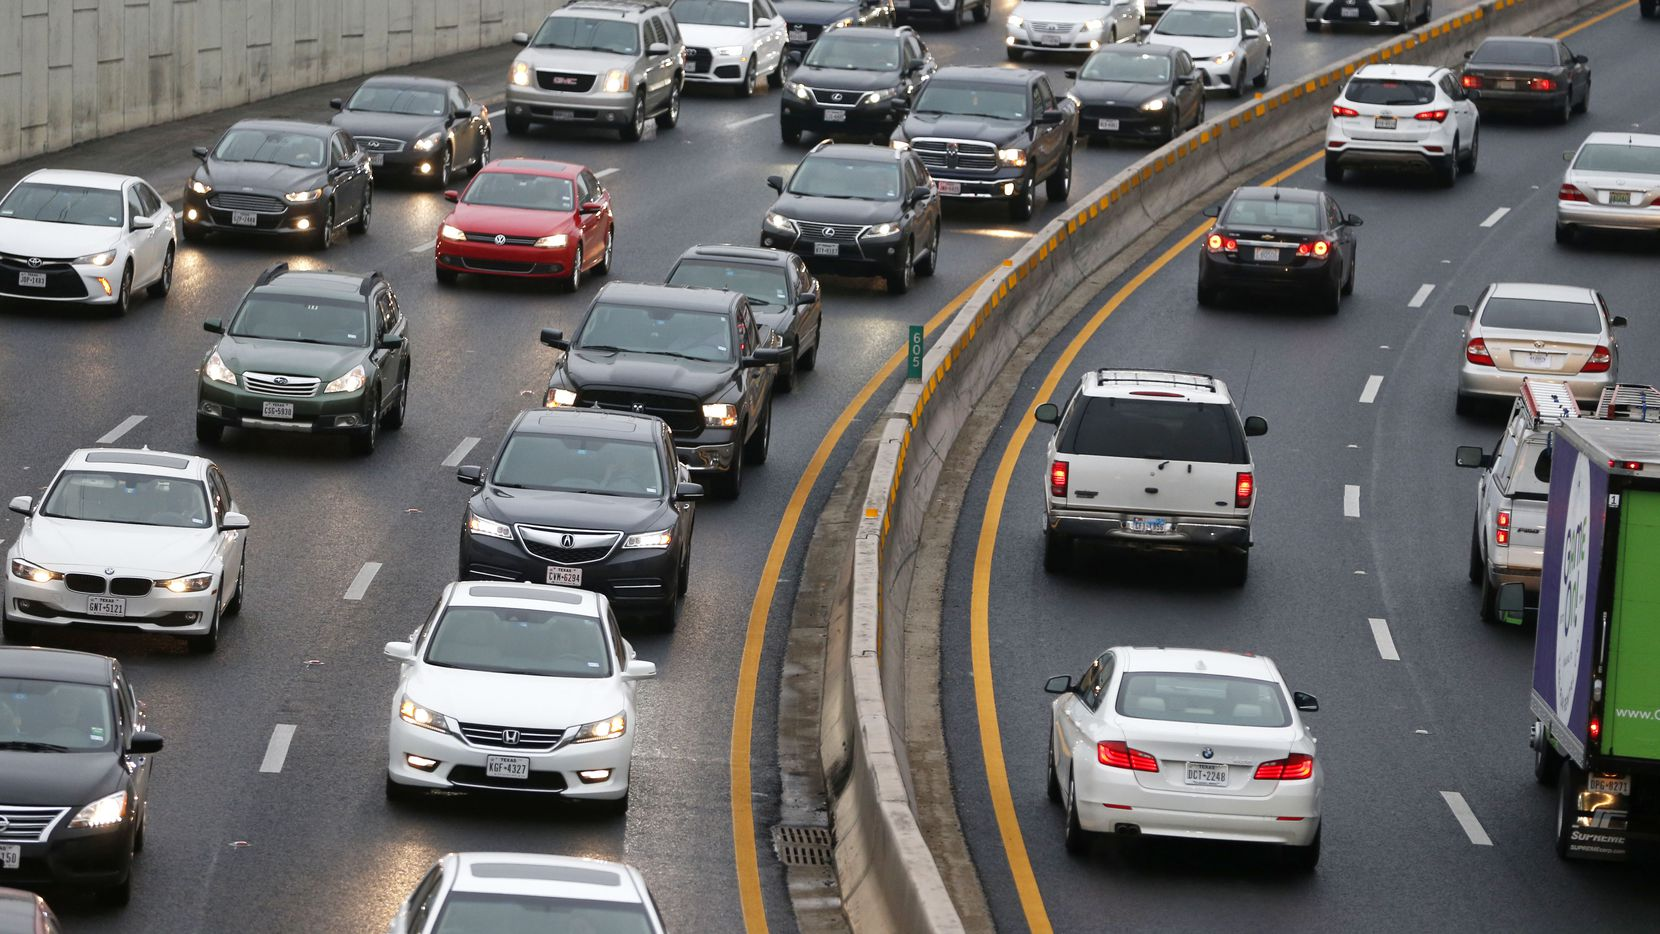 Moe than half of Dallas-area drivers have reverse commutes from urban areas to the 'burbs, according to commercial property firm JLL.